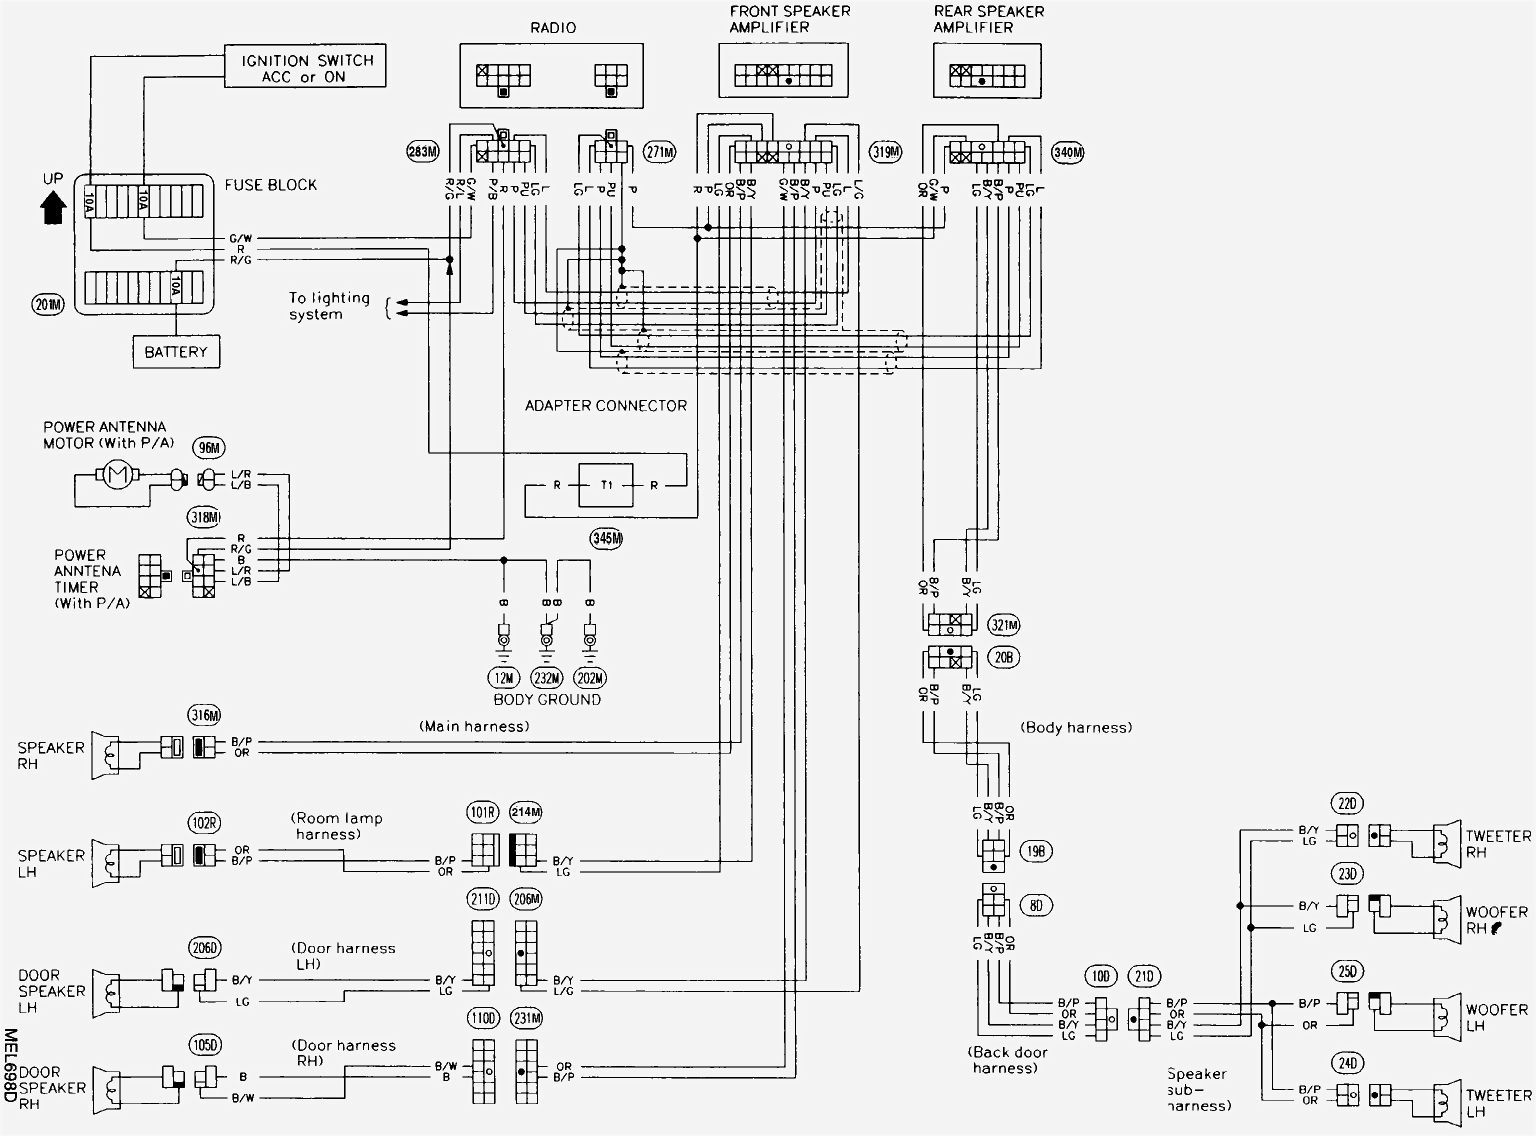 true t 72f wiring diagram Download-true t 49f wiring diagram Collection Contemporary Nissan Almera Wiring Diagram Elaboration Wiring 8 DOWNLOAD Wiring Diagram Sheets Detail Name true t 20-m